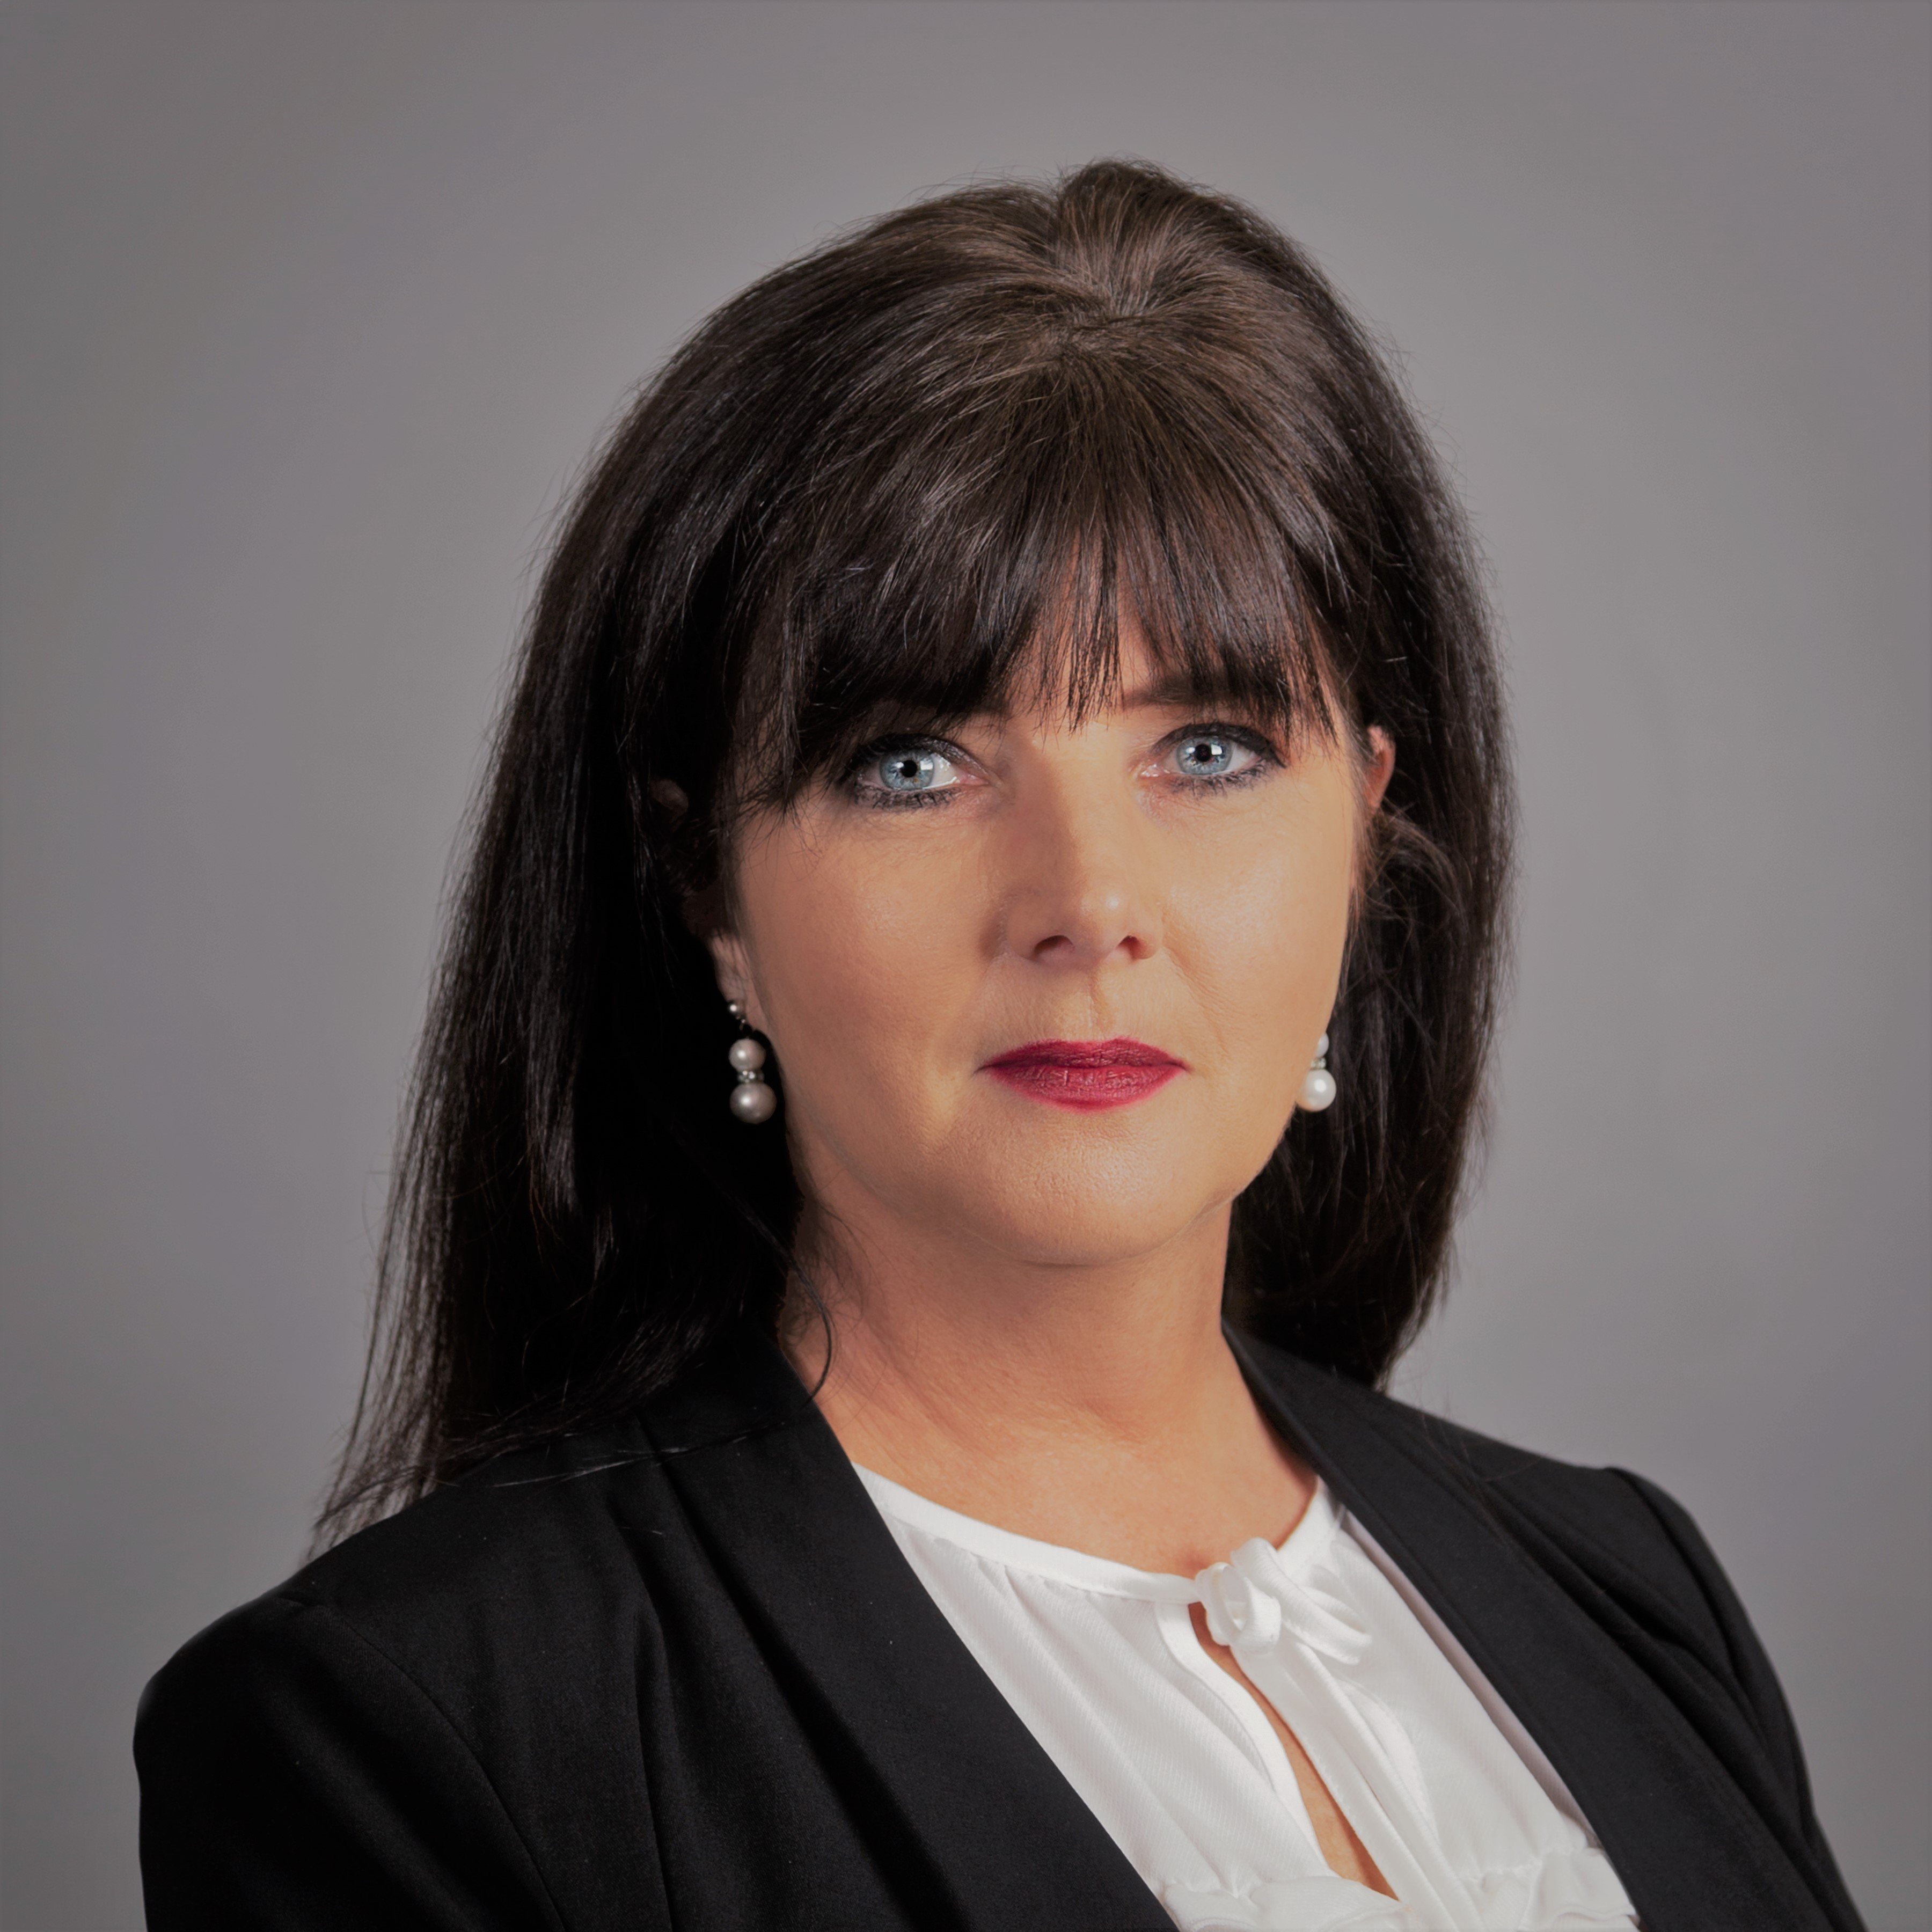 Martina O'Donnell